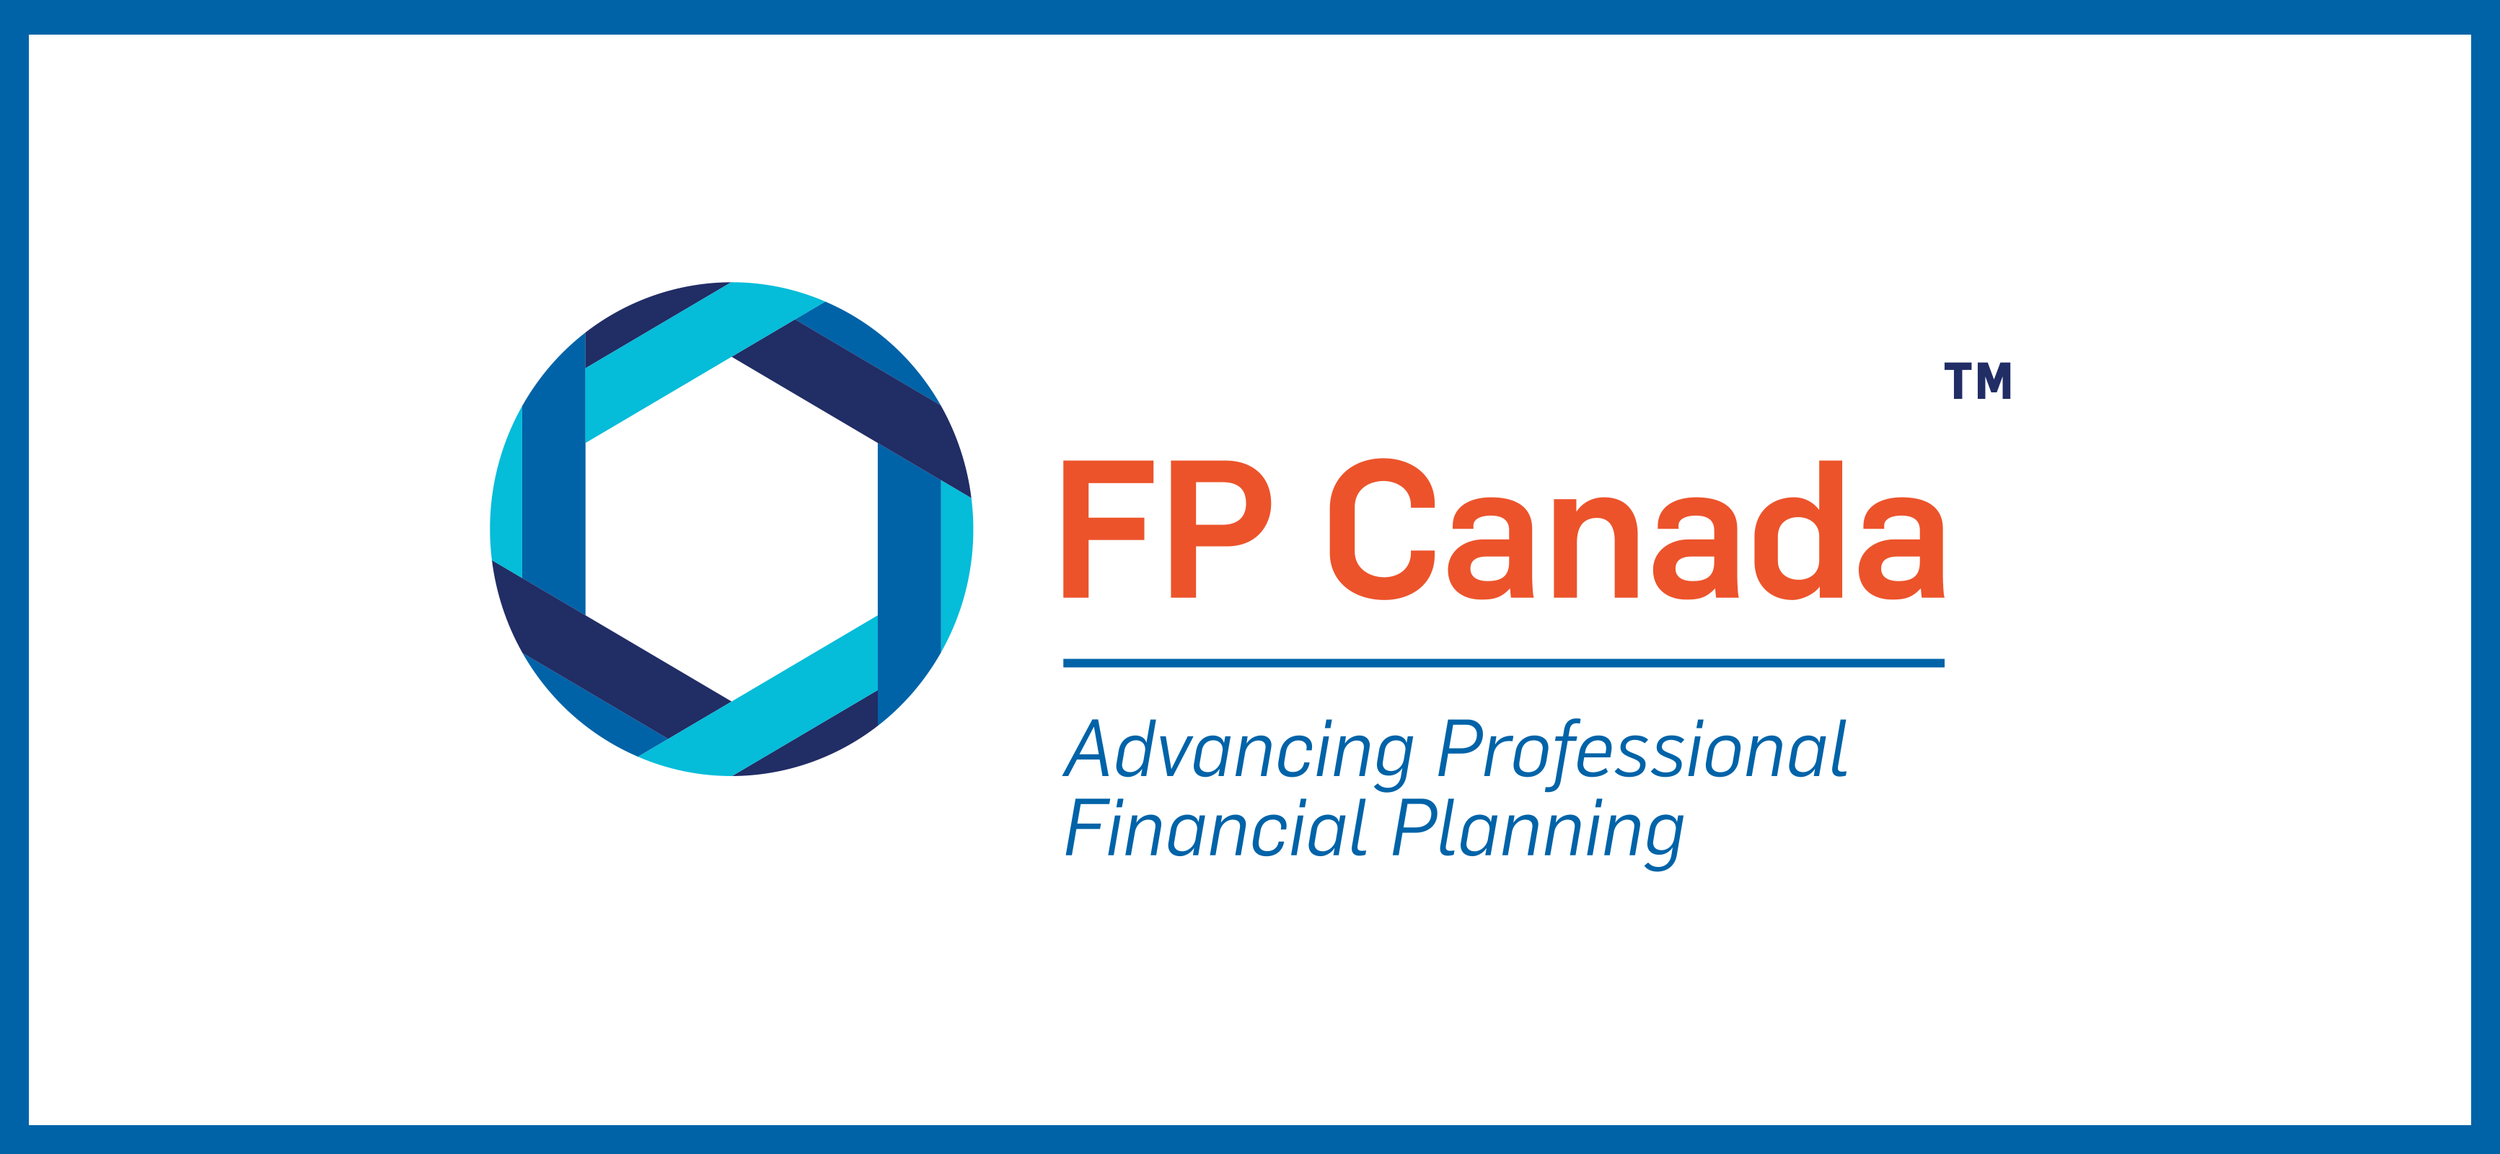 FPSC-relaunches-as-FP-Canada.png